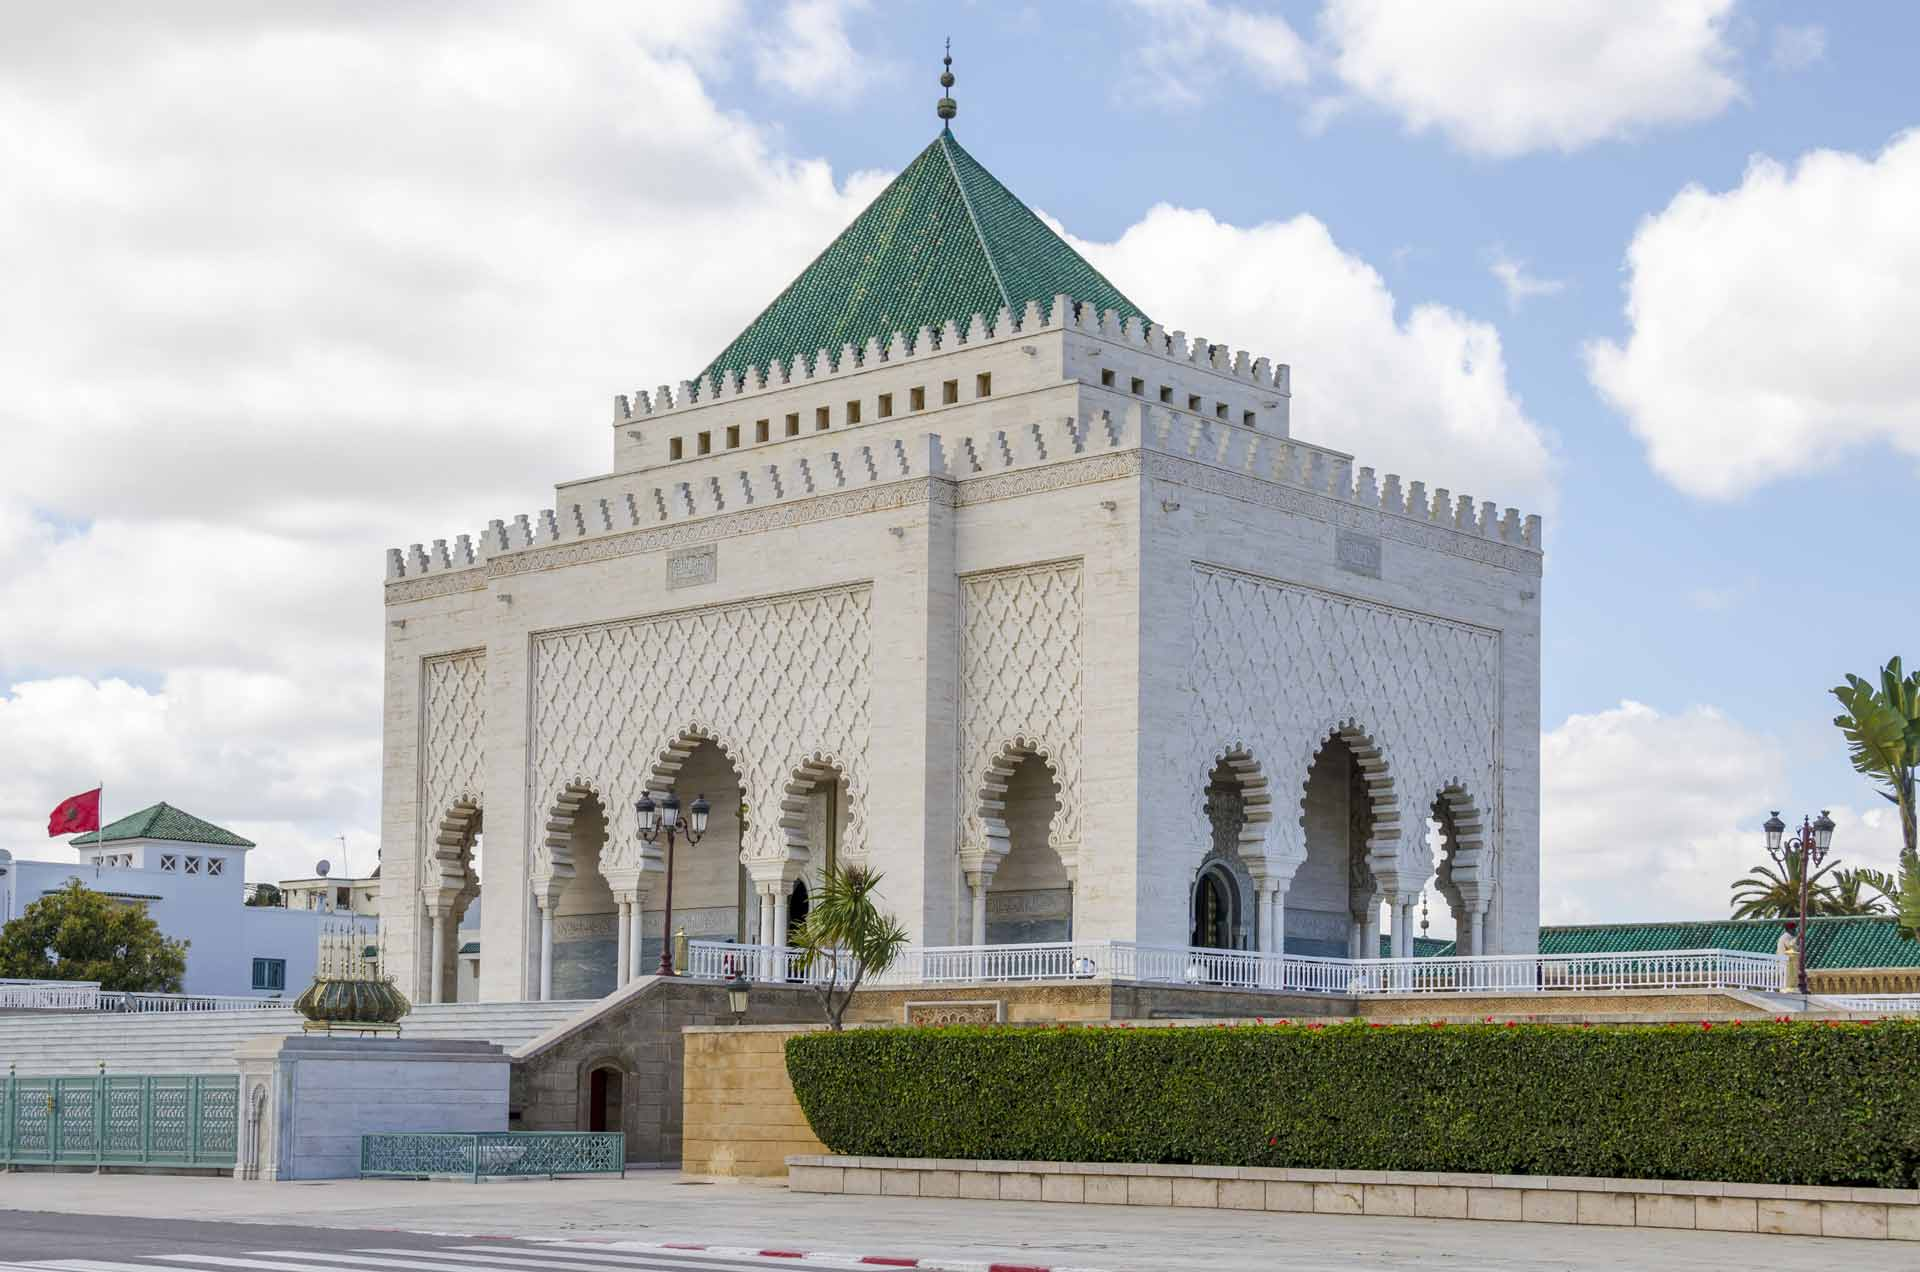 The Mausoleum of Mohammed V, a historical building located on the opposite side of the Hassan Tower on the Yacoub al-Mansour esplanade in Rabat